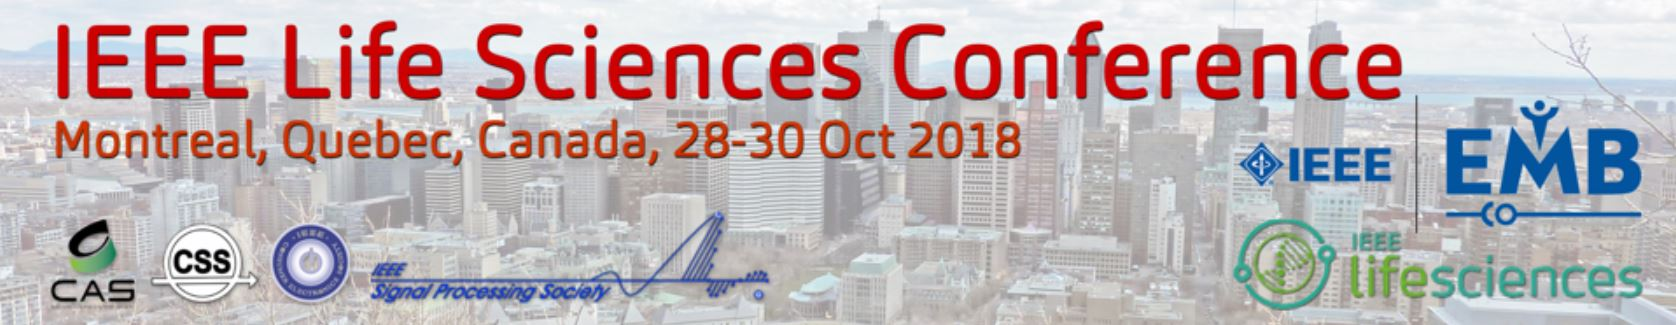 Life Sciences Conference 2018